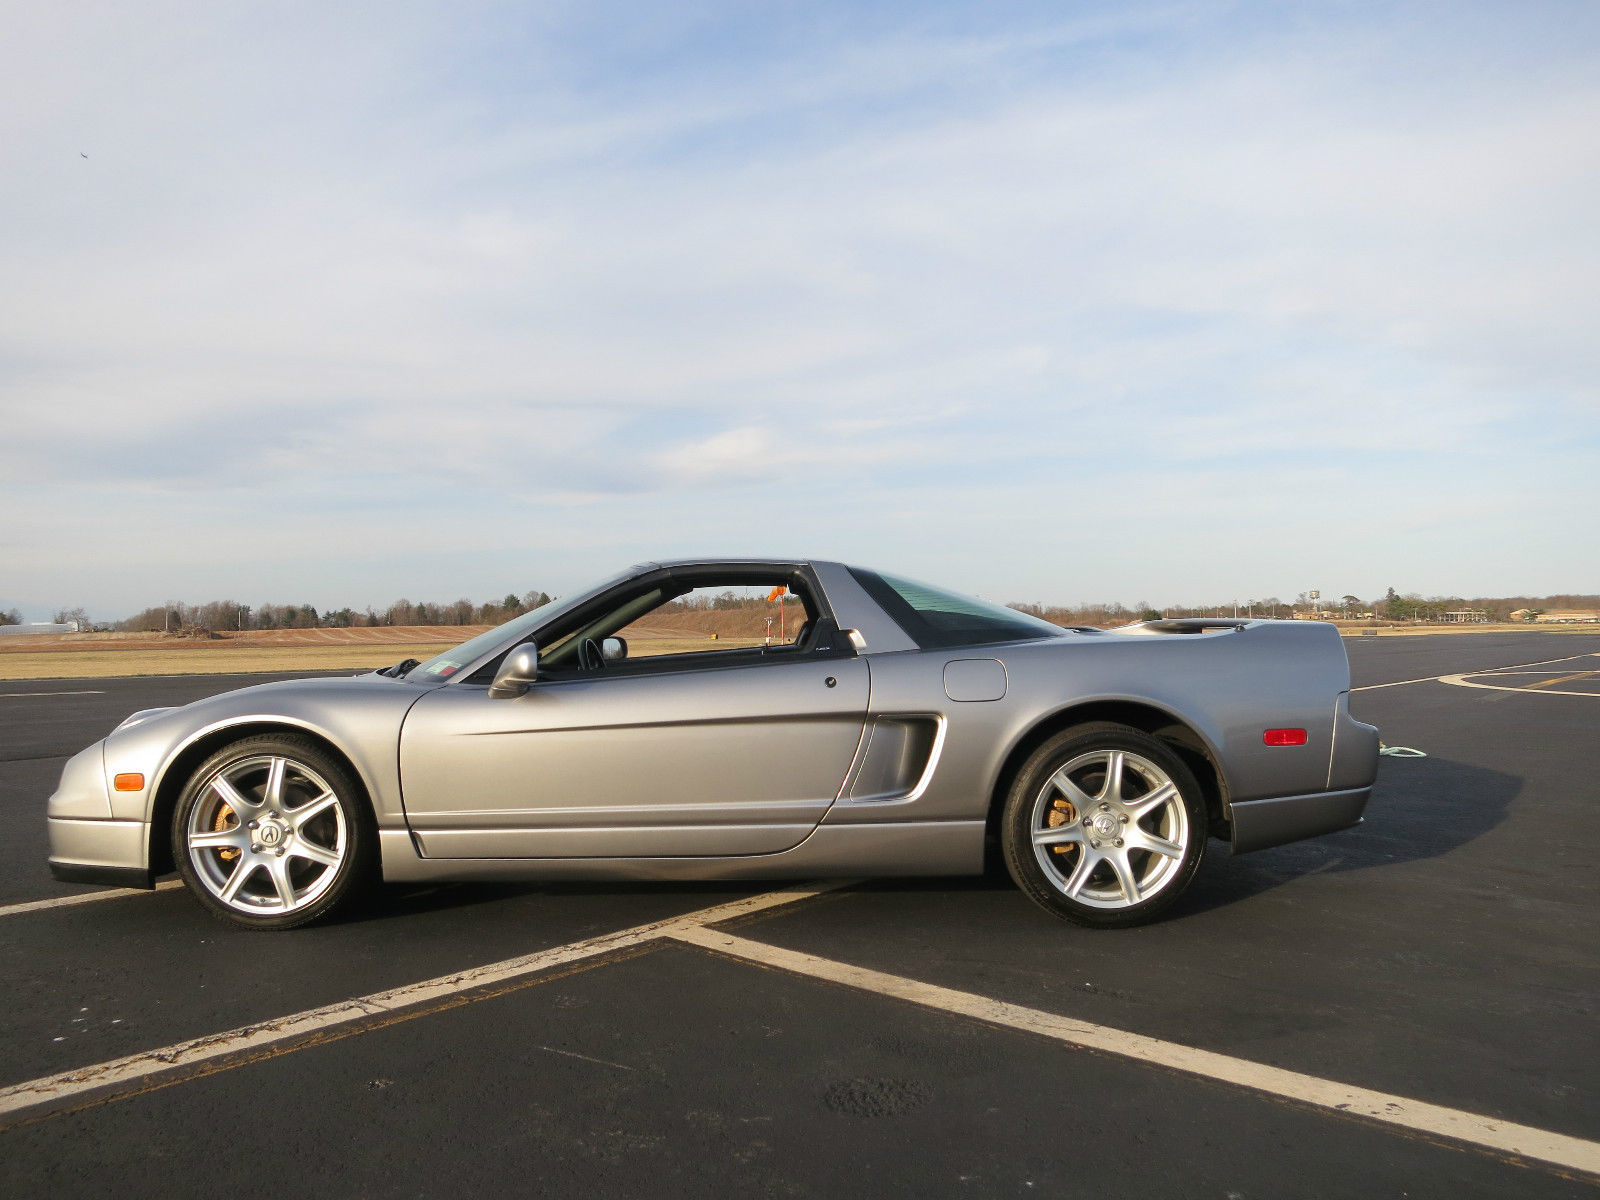 2002 Acura NSX Targa With Only 7,500 Miles for Sale on ...